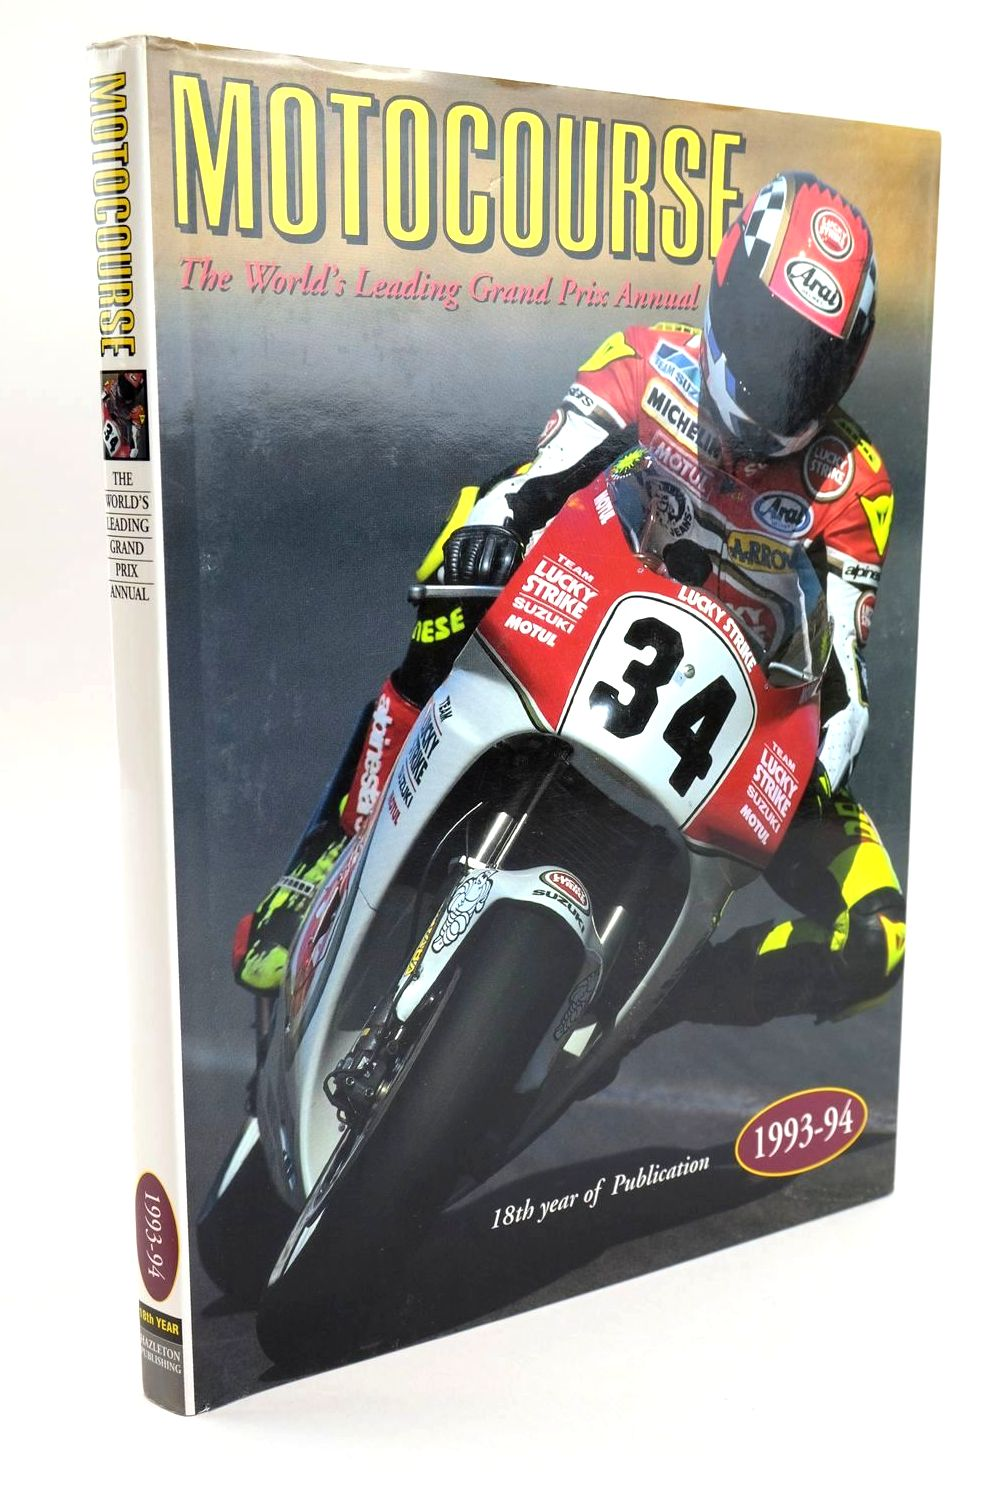 Photo of MOTOCOURSE 1993-94 published by Hazleton Publishing (STOCK CODE: 1319328)  for sale by Stella & Rose's Books